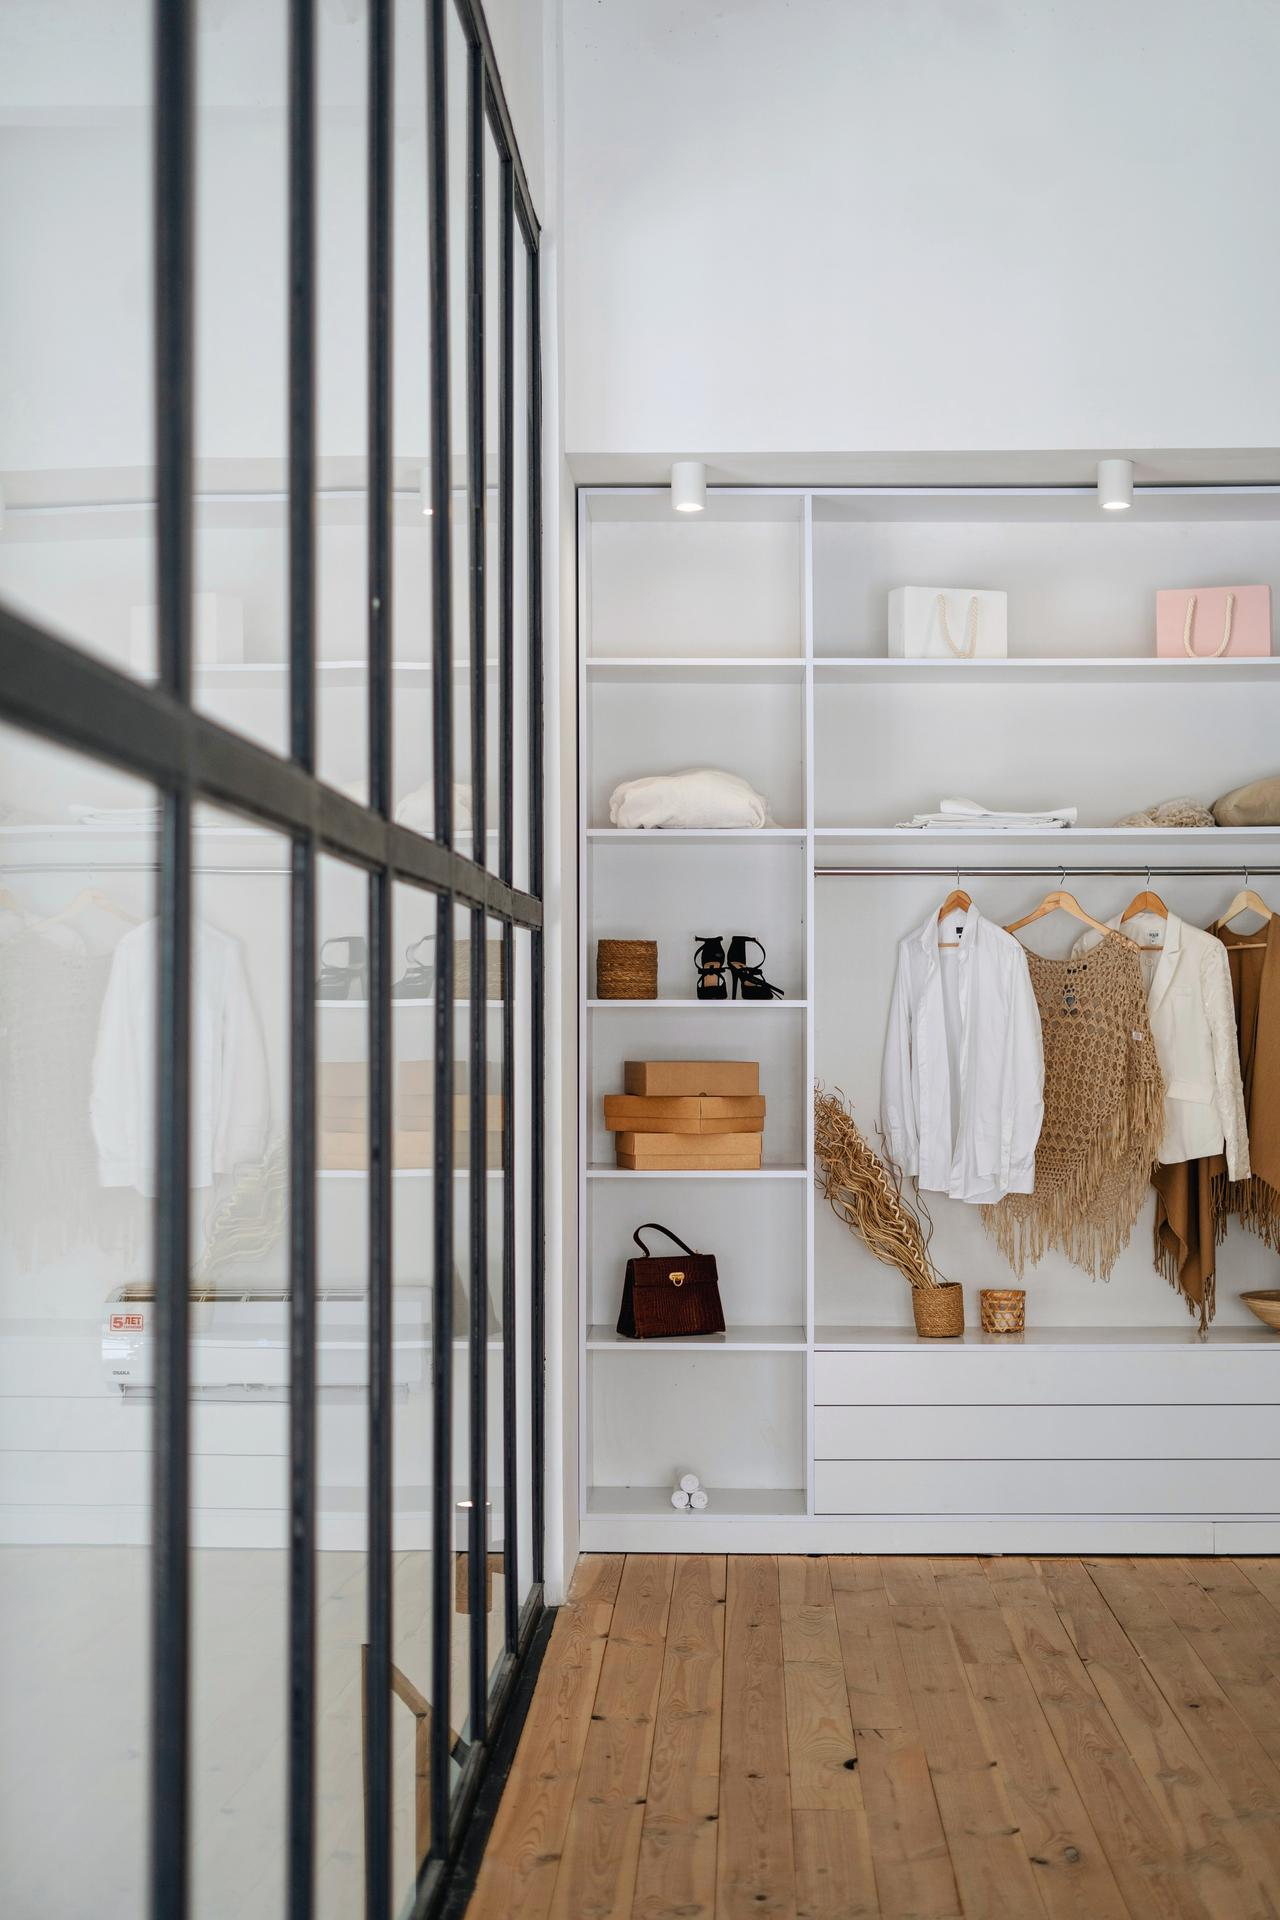 Can I get more space with a custom closet design in my New York apartment?